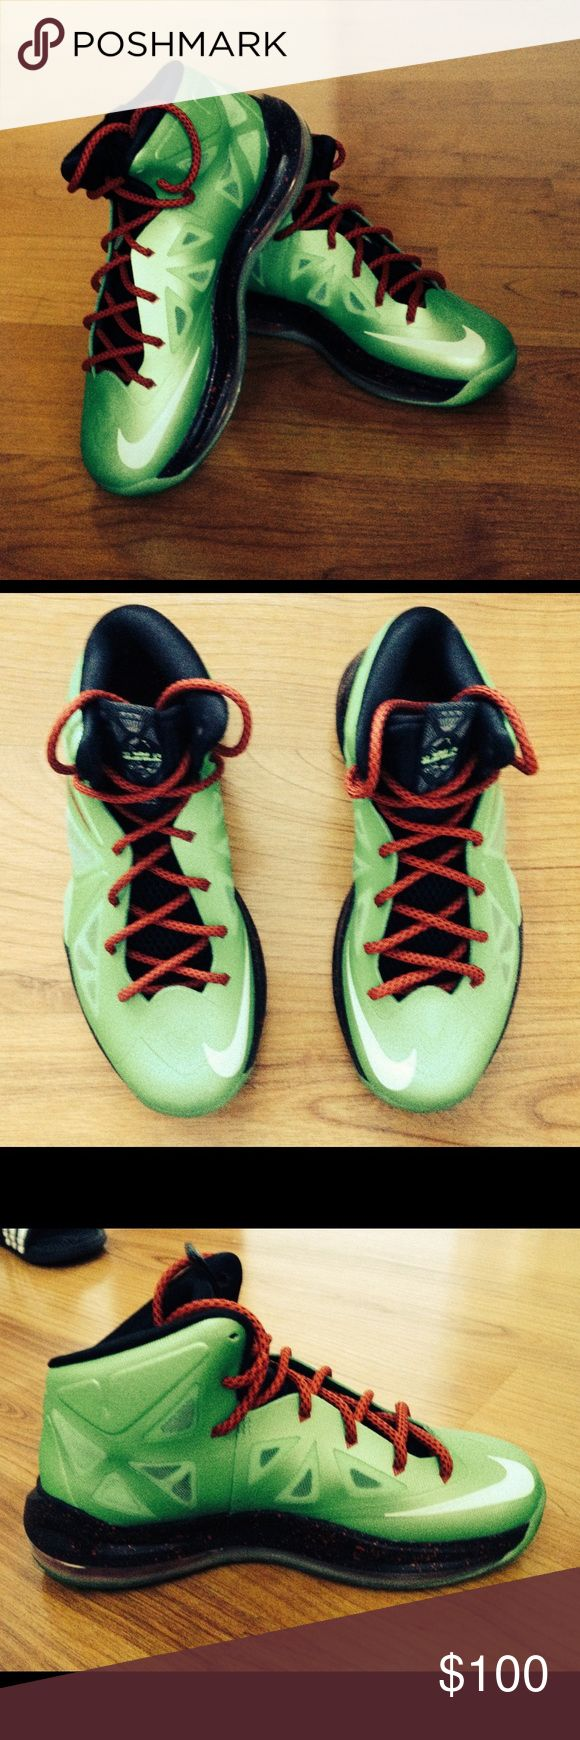 """Lebron X """"Cutting Jade"""" Lebron James basketball shoes, manufactured by Nike. Nike Shoes Sneakers"""